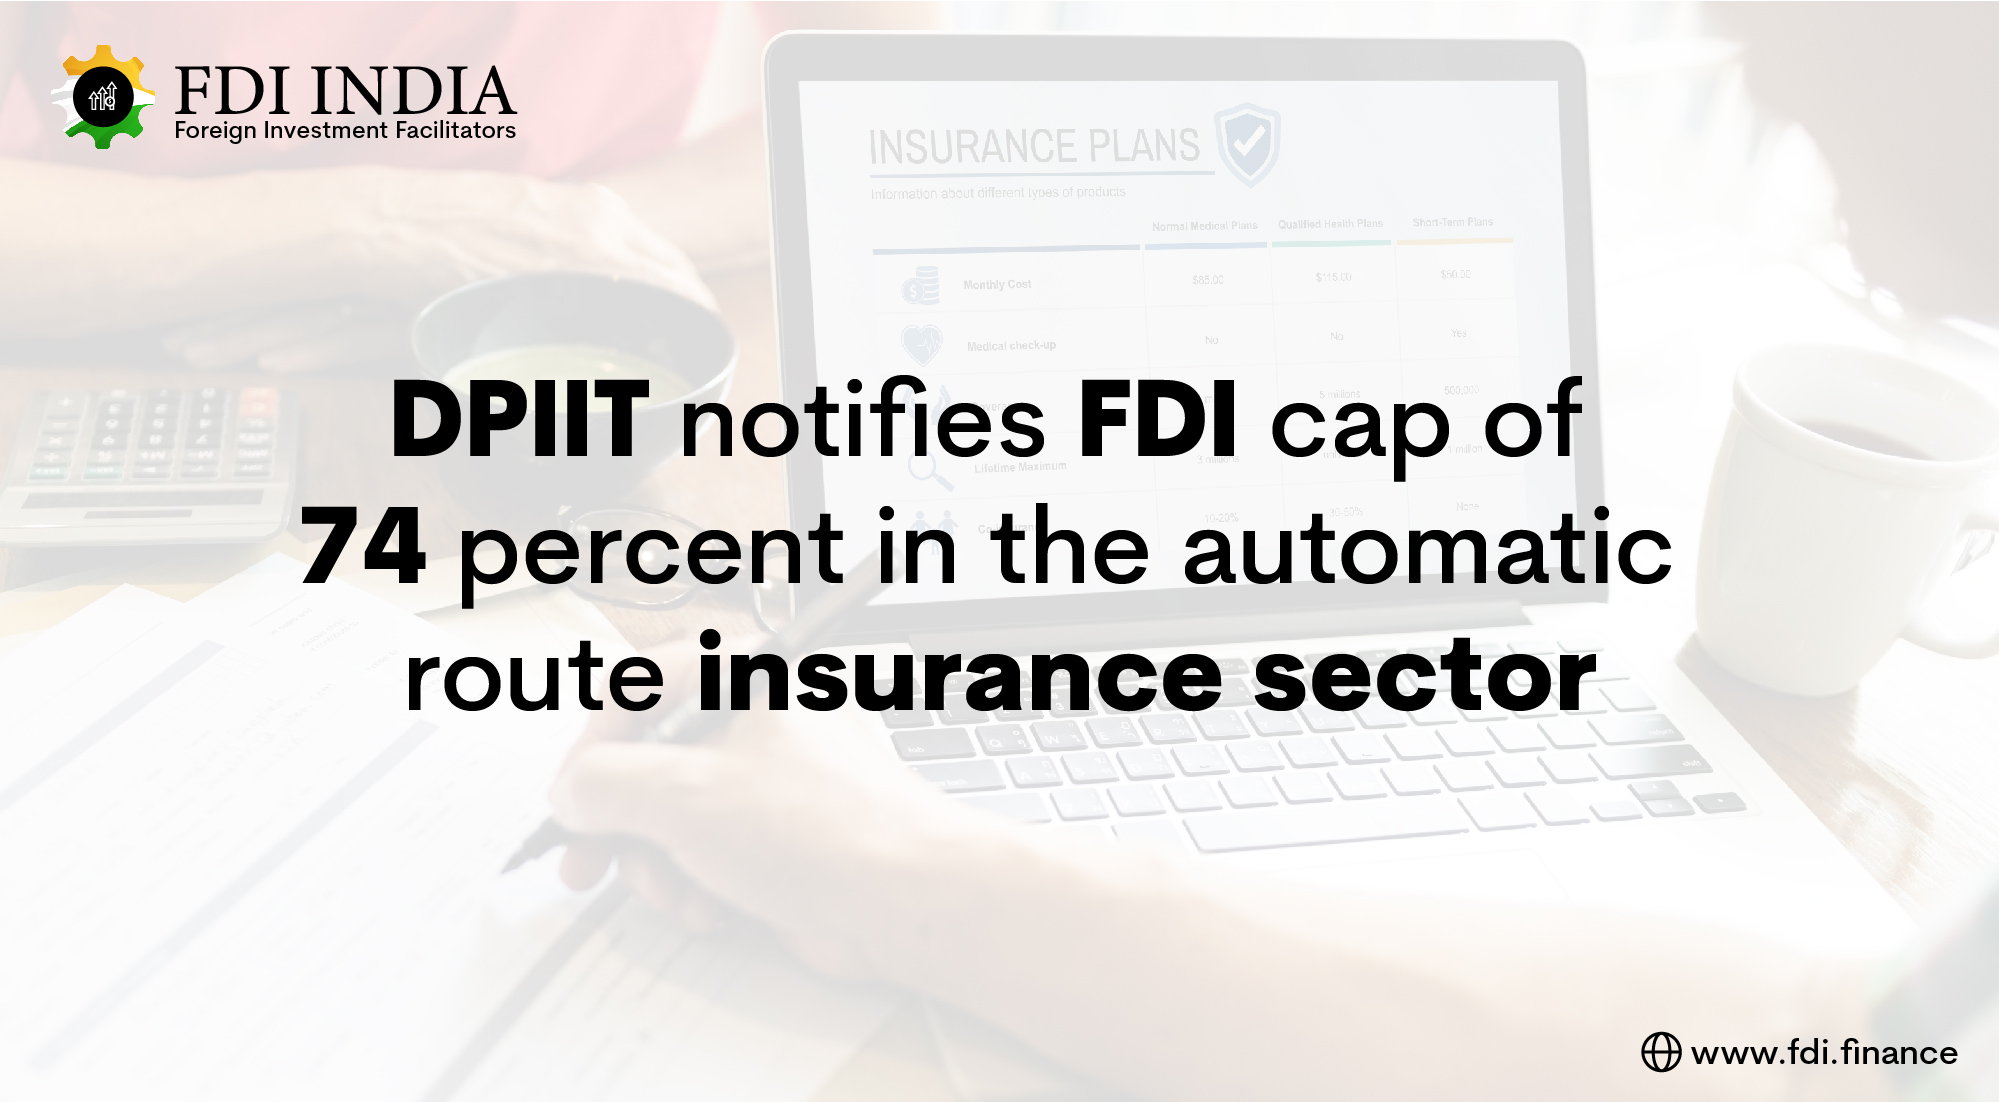 DPIIT Notifies FDI Cap of 74 Percent in the Automatic Route Insurance Sector